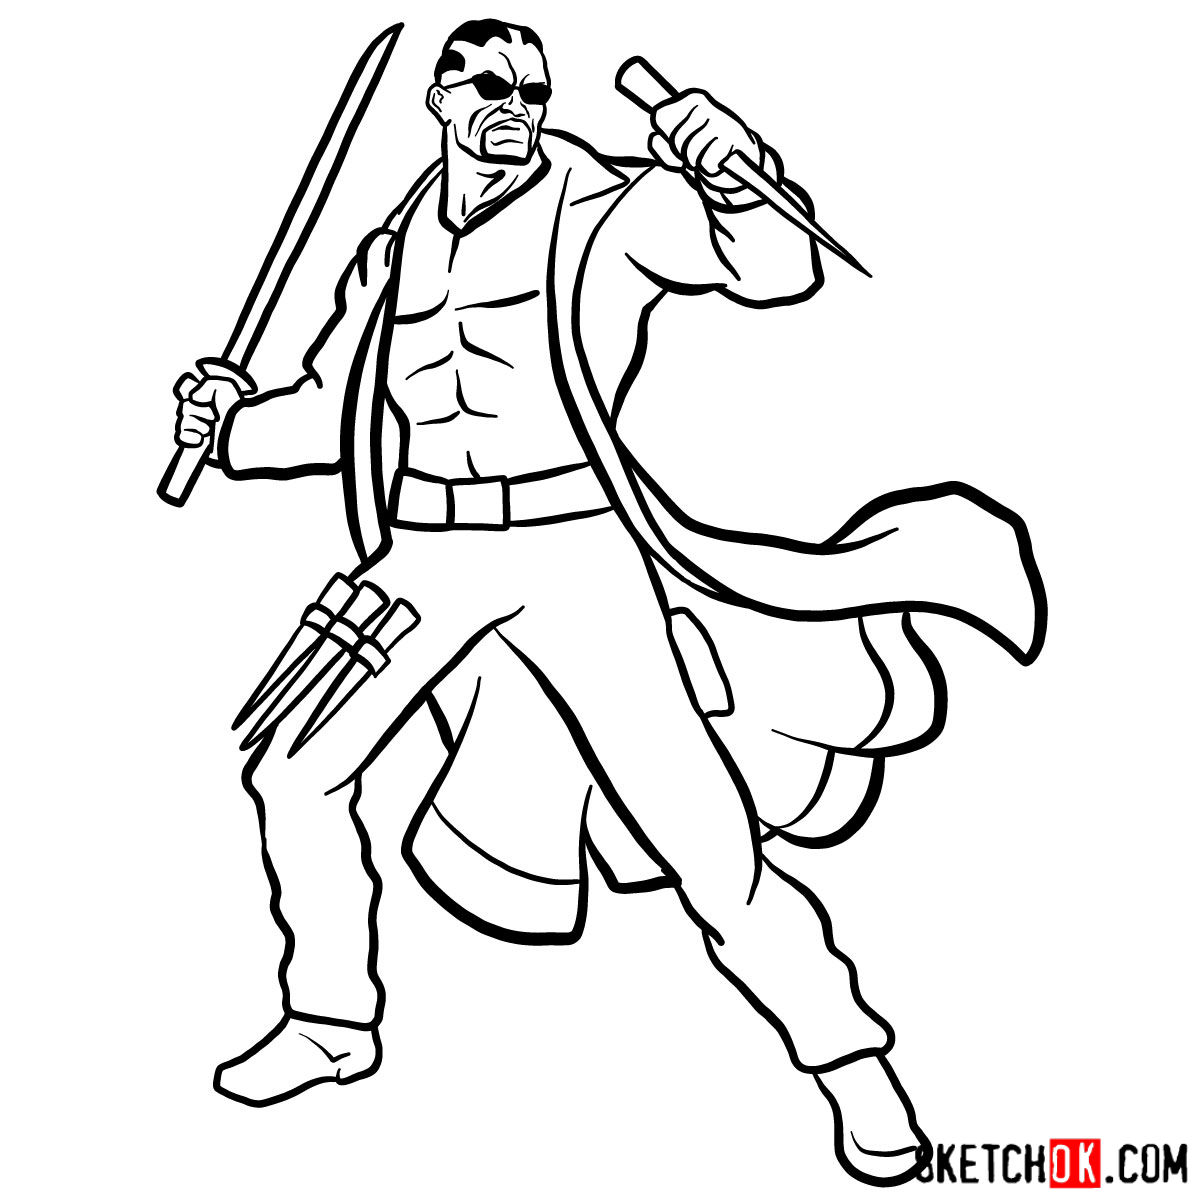 How to draw Blade from Marvel Comics - step 16